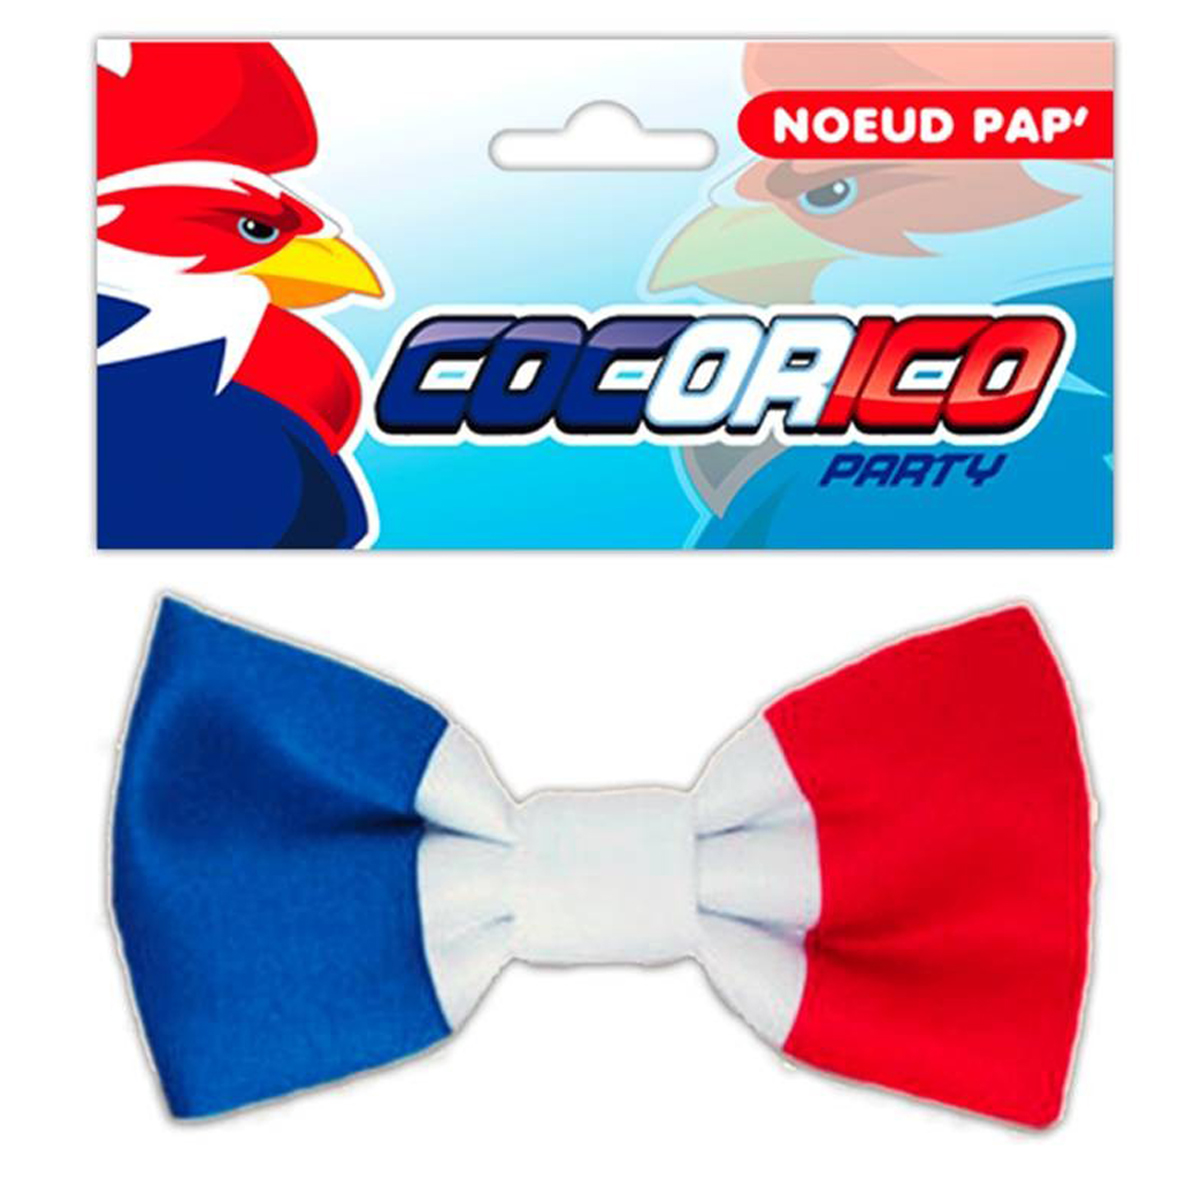 Noeud papillon \'France Cocorico\' tricolore - [N4226]